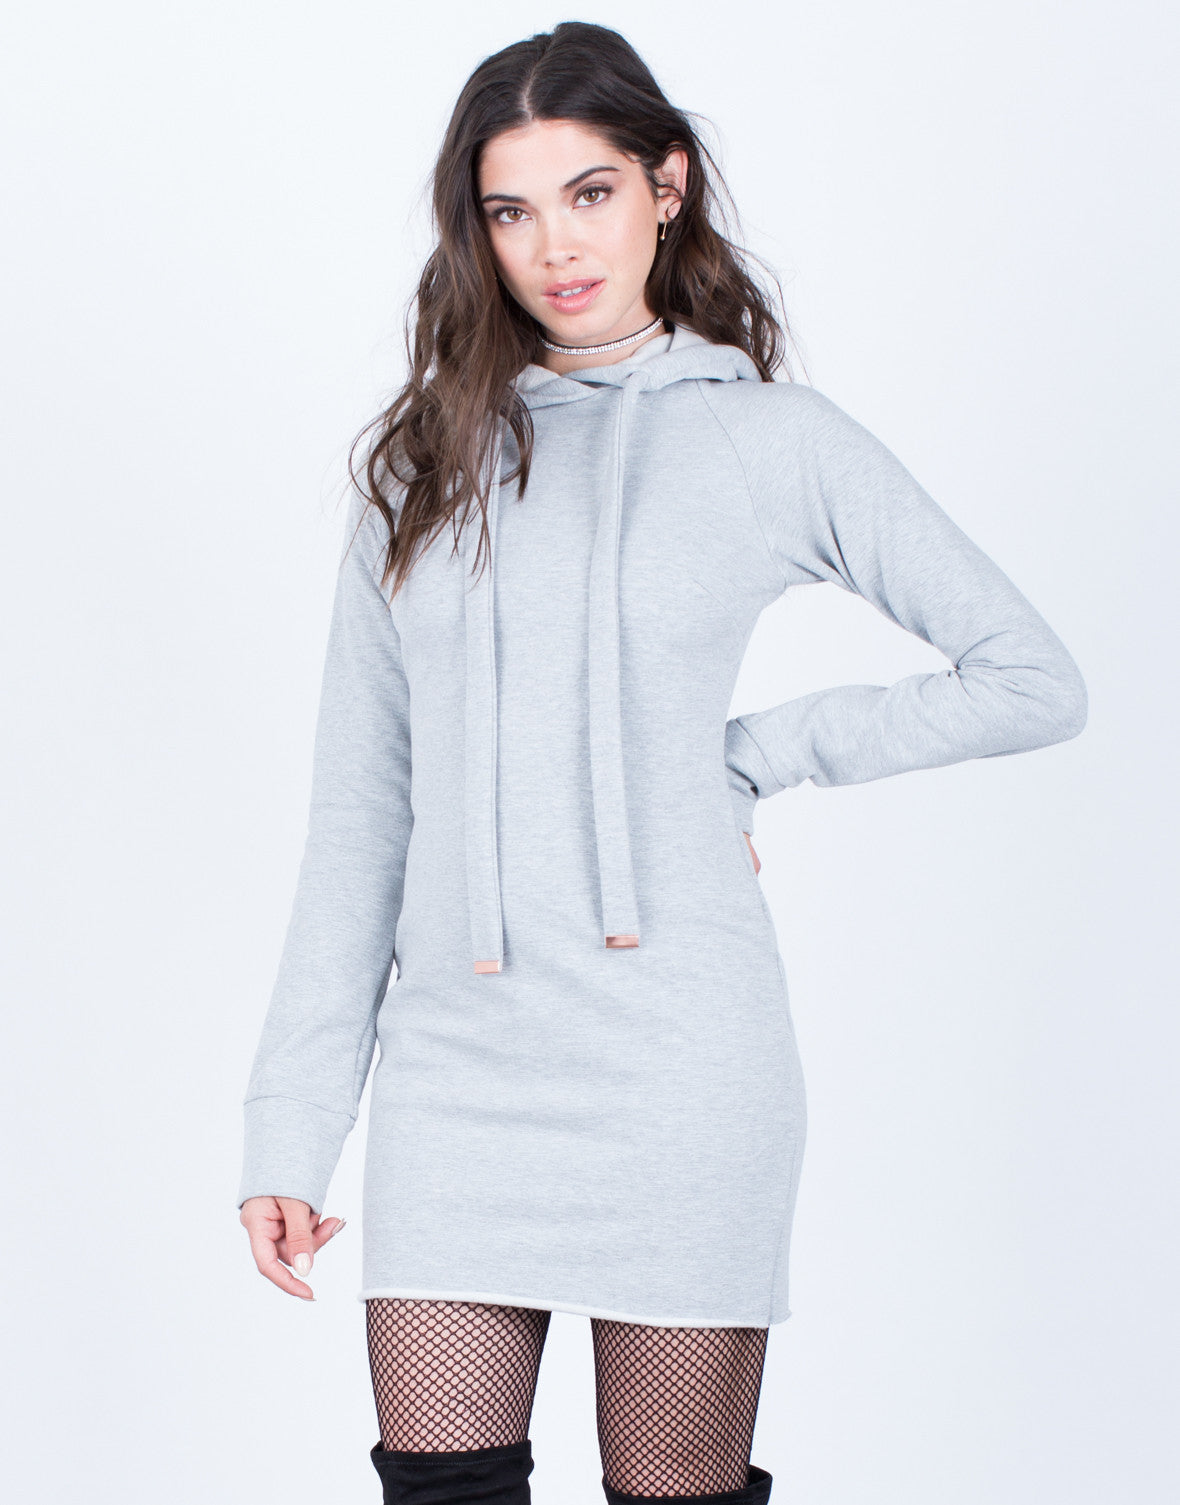 Front View of Hoodie Sweater Dress